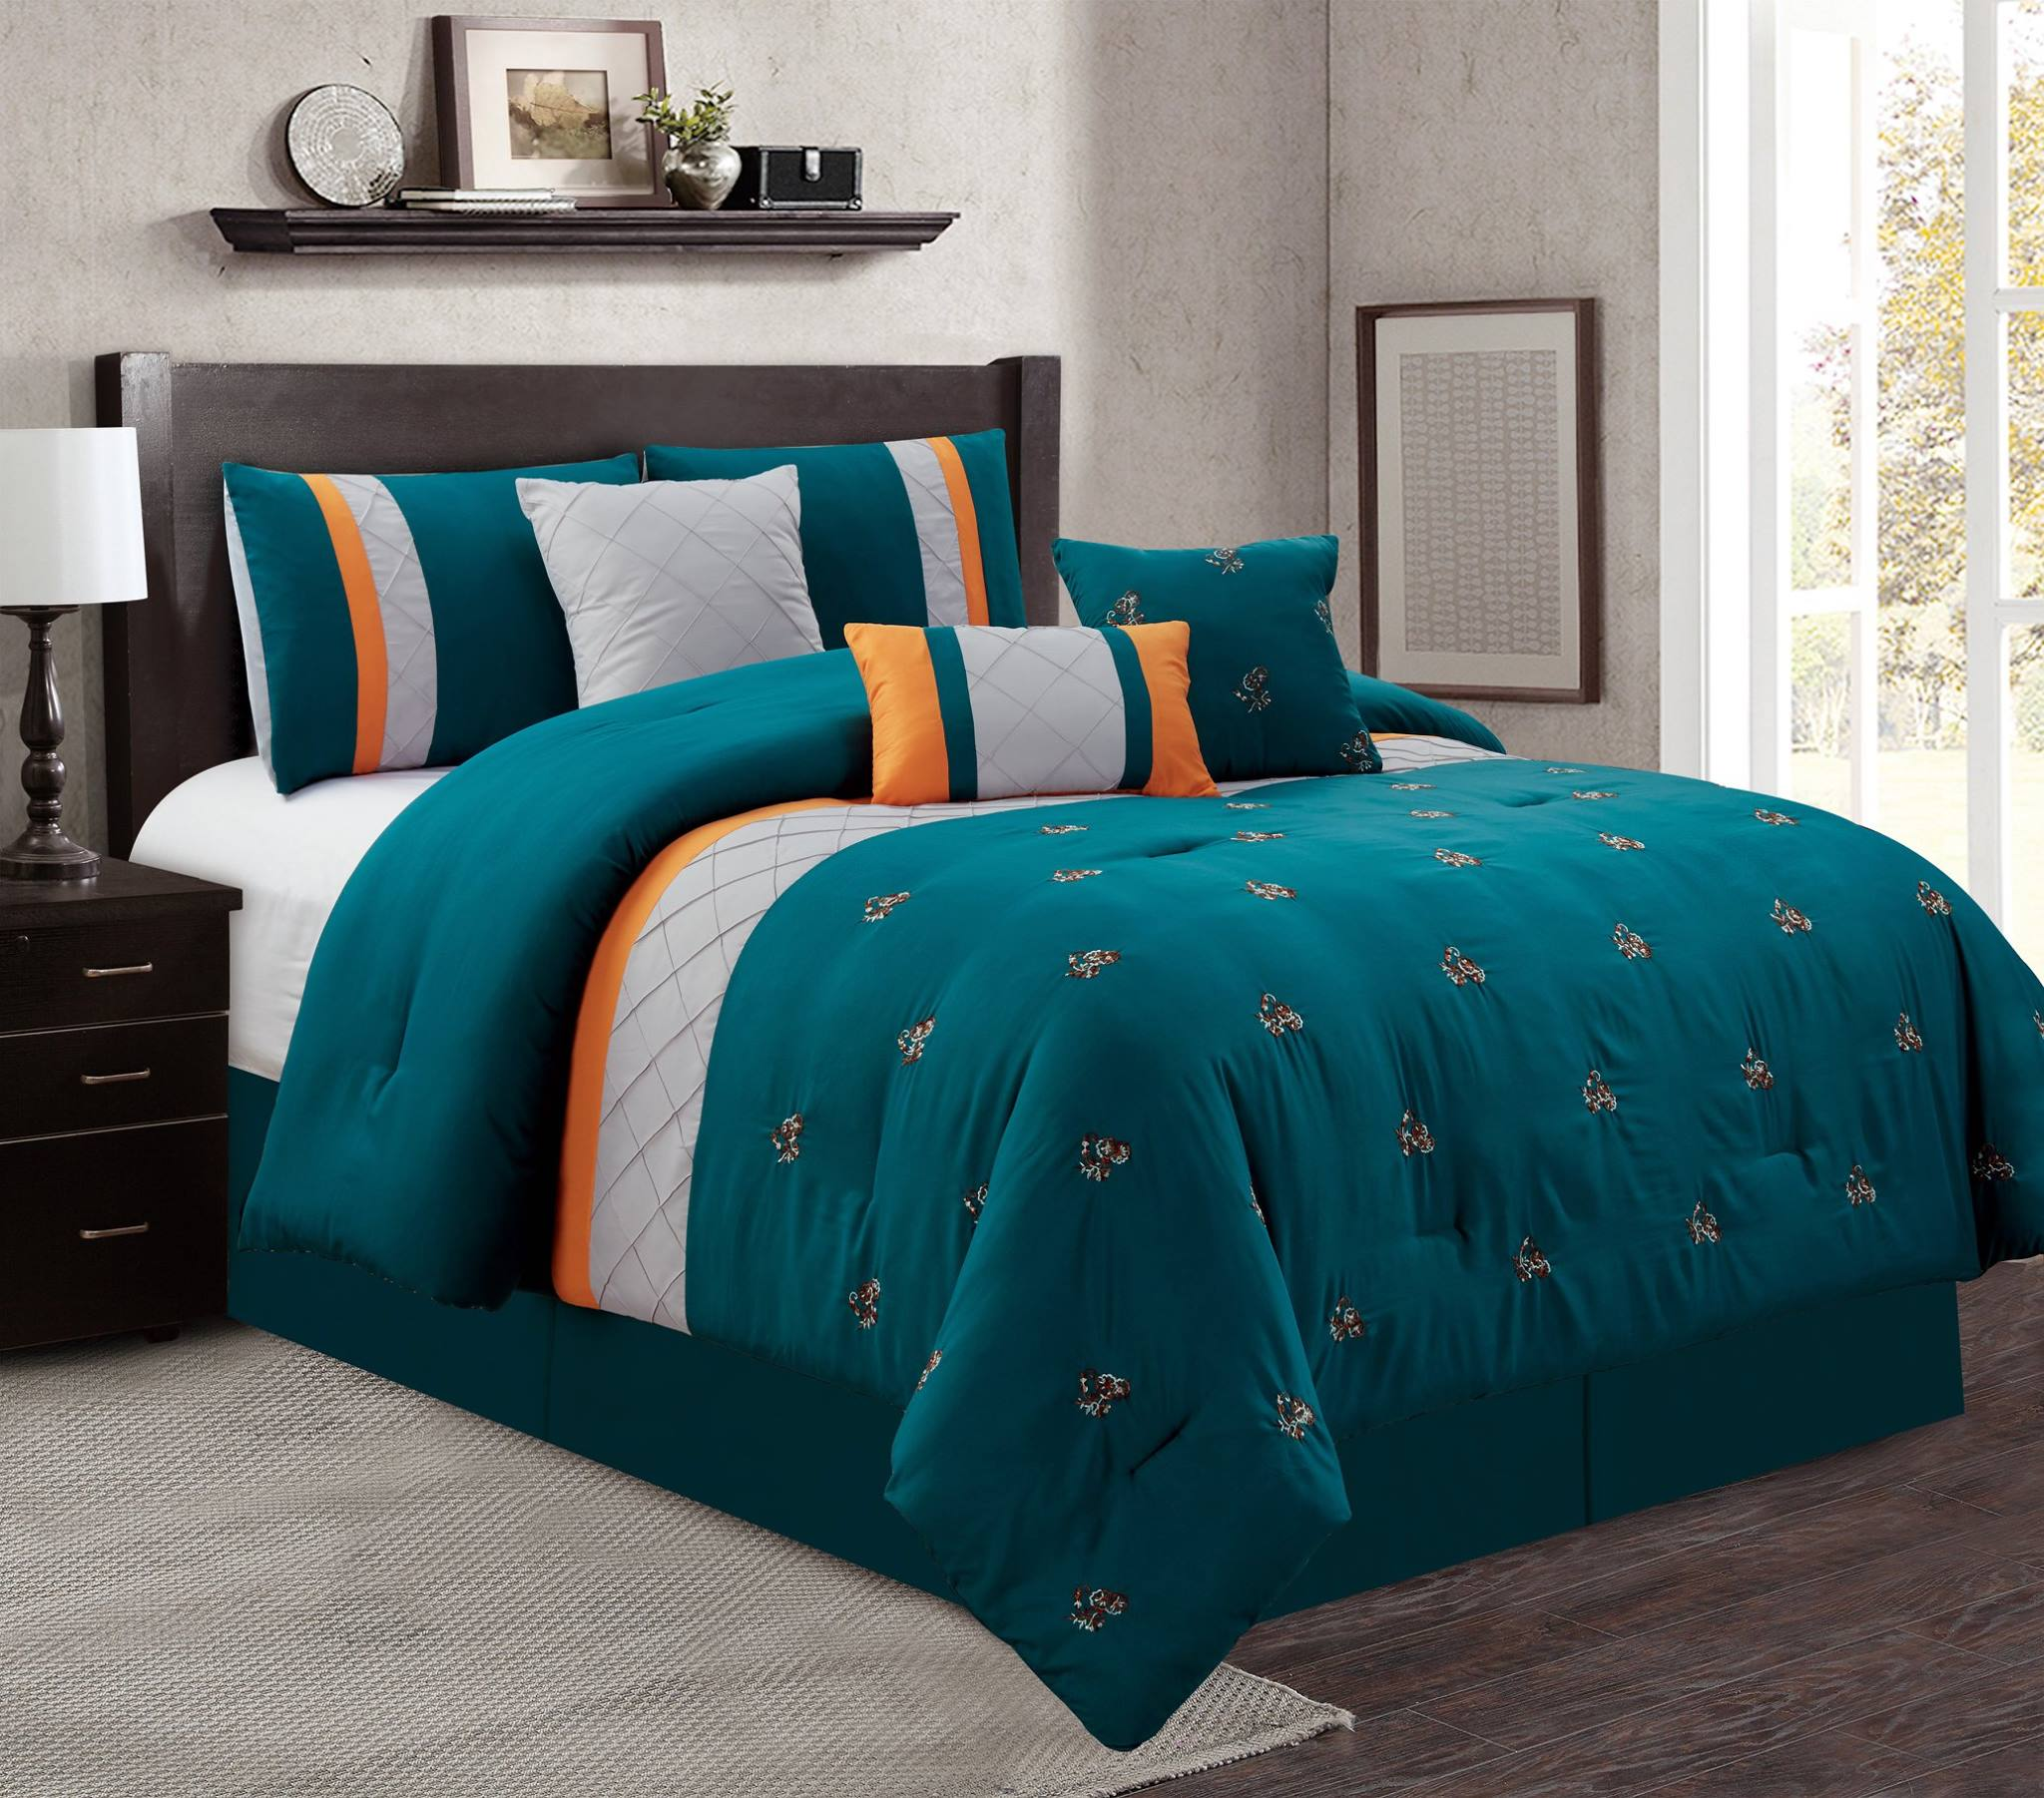 chateau cal pin cotton set teal comforter bedding king piece